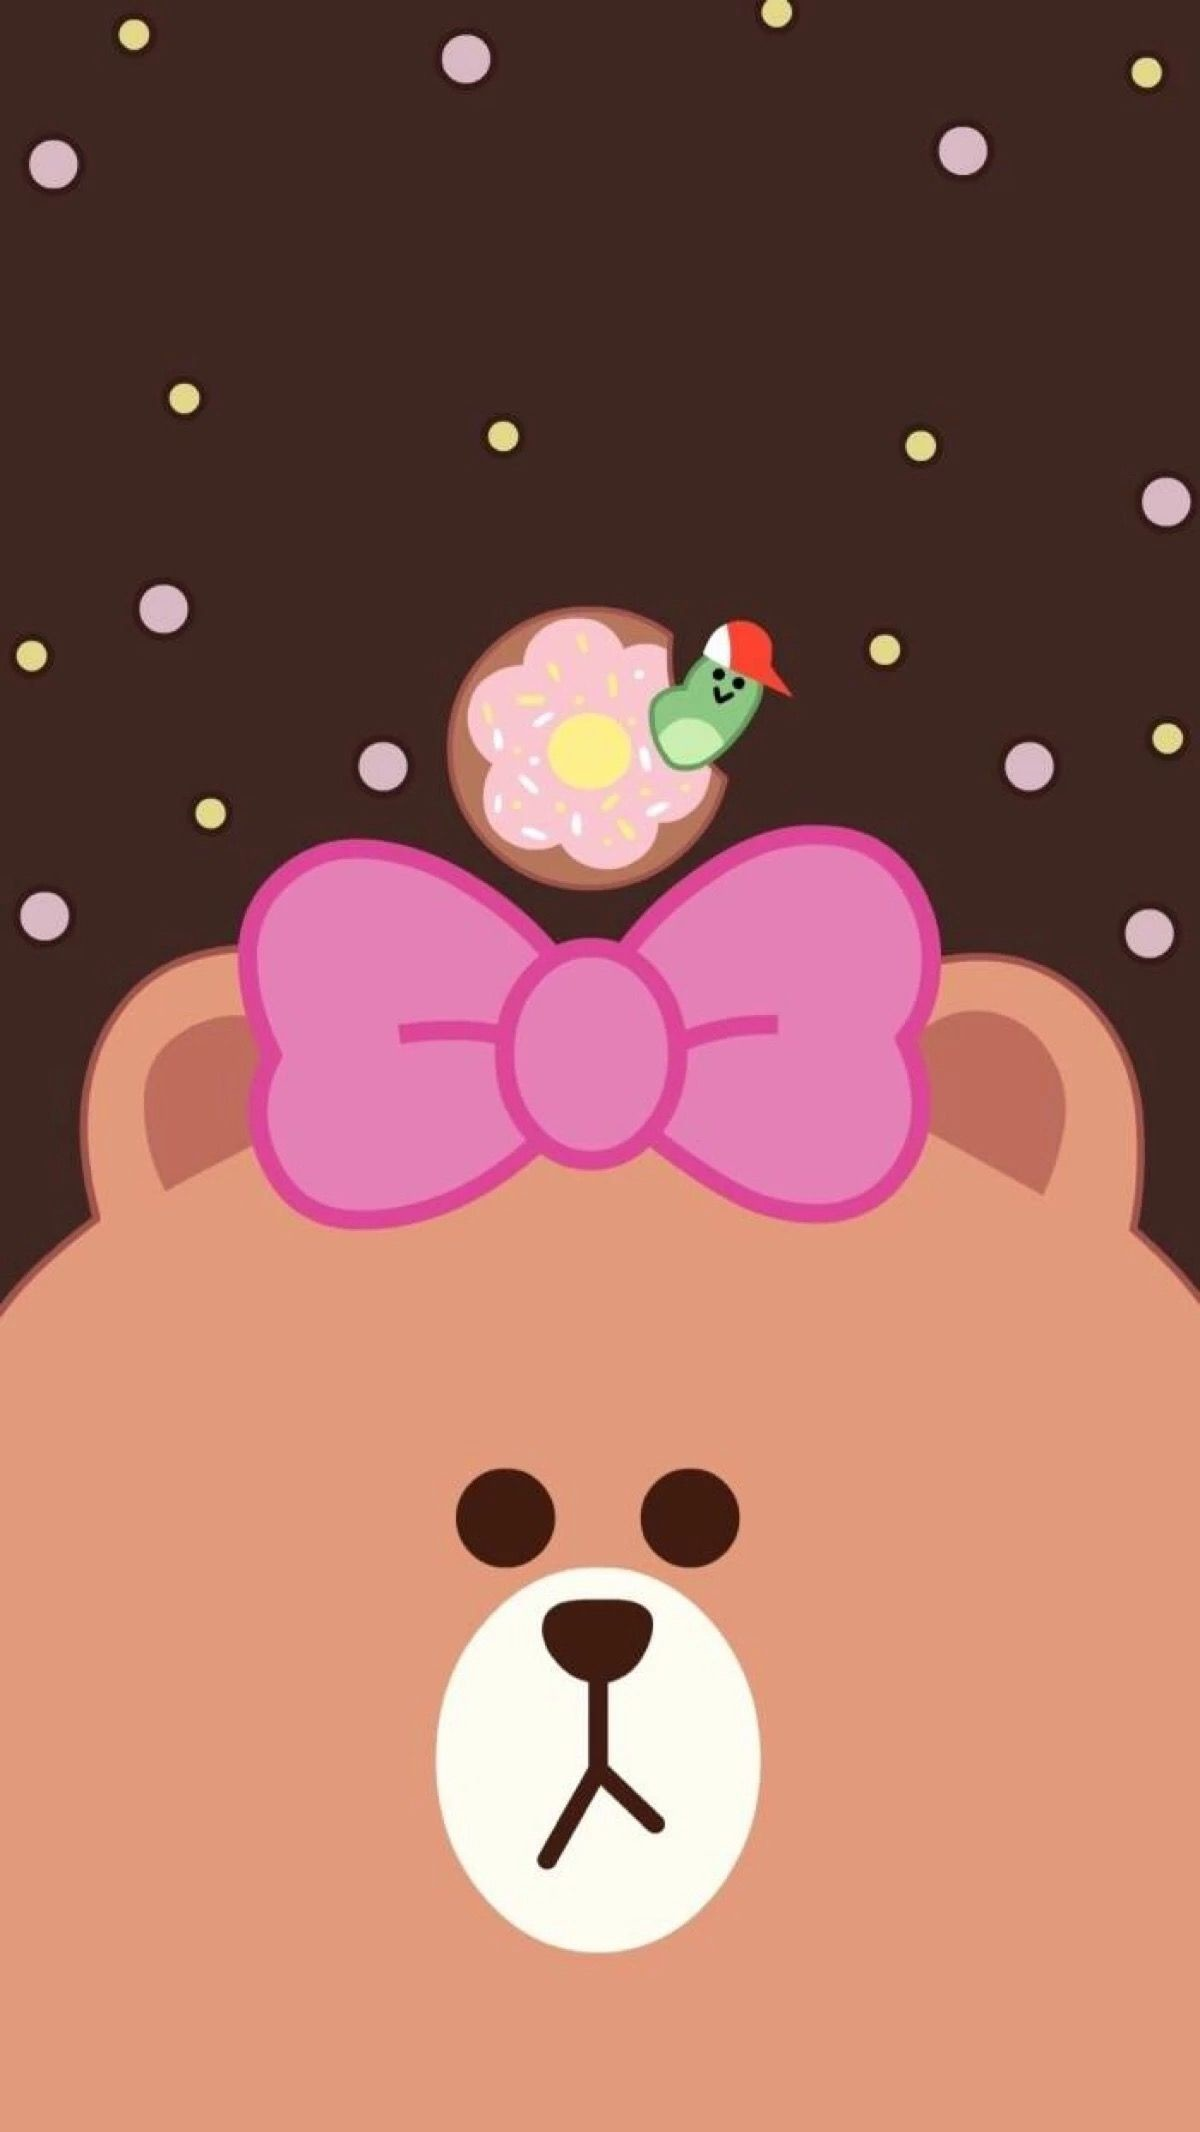 Res: 1200x2132, Friends Wallpaper, Line Friends, Cartoon Wallpaper, Iphone 7, Rilakkuma, Iphone  Wallpapers, Phone Wallpapers, Softies, Display